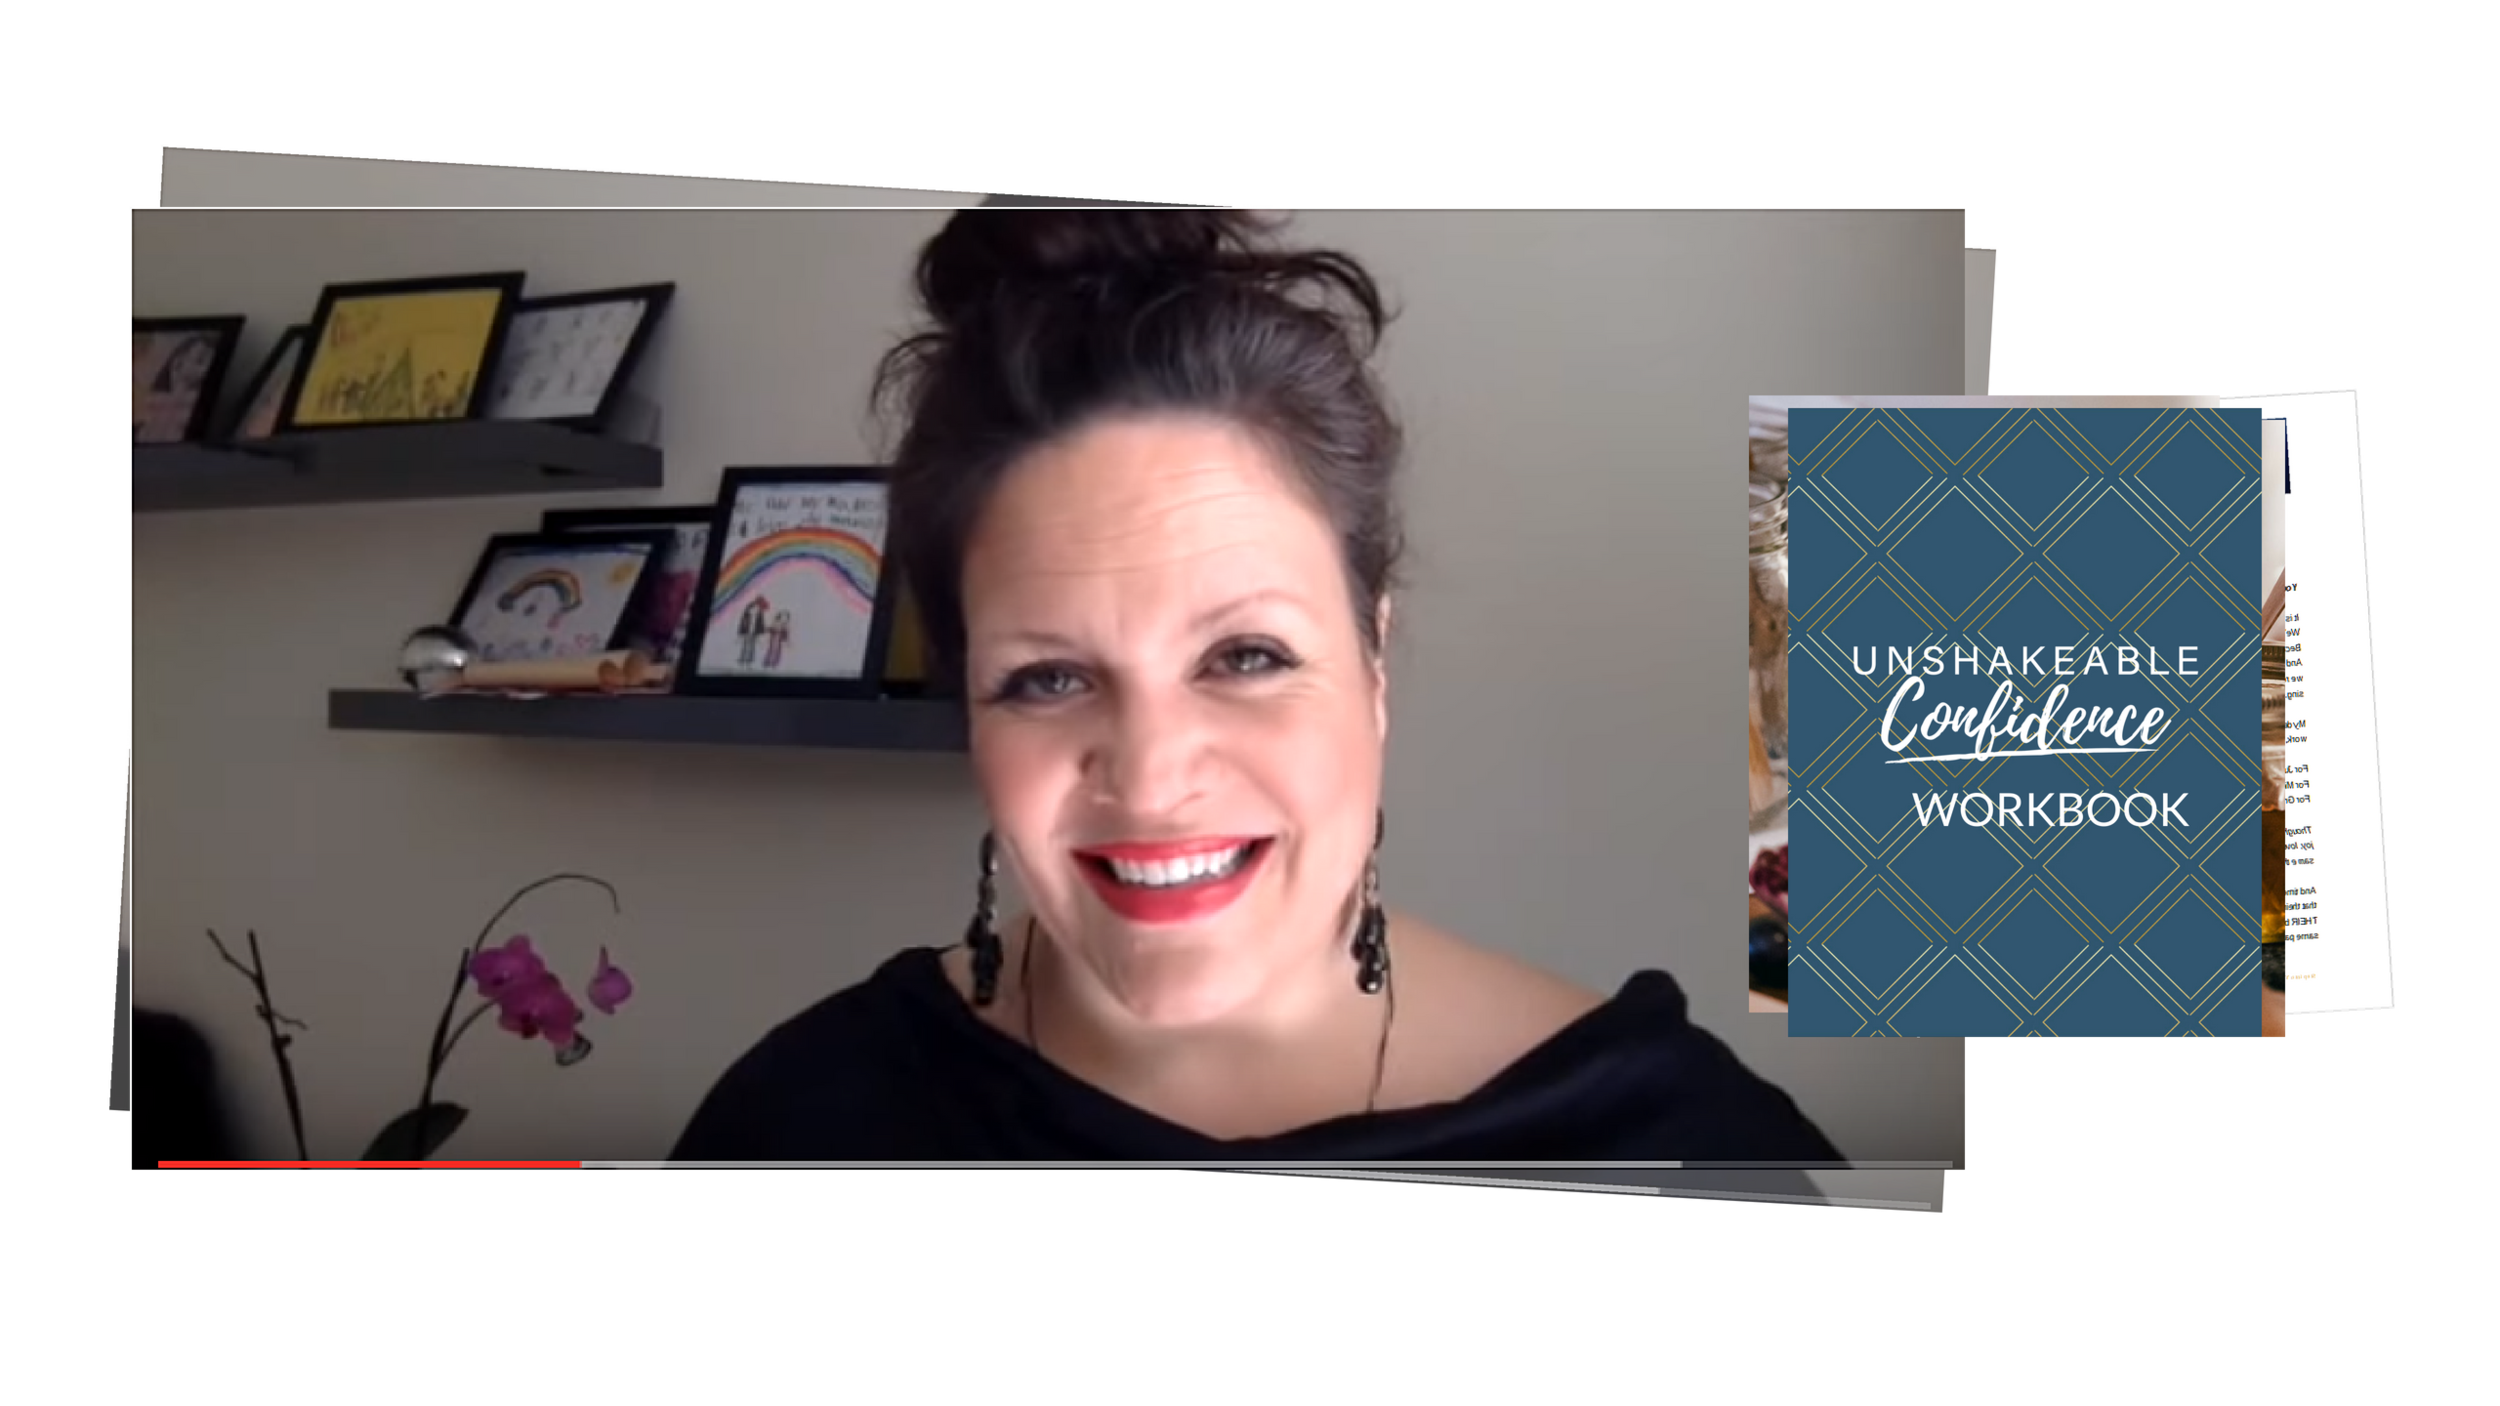 Unshakeable Confidence Beta Cohort Video Calls and Workbook